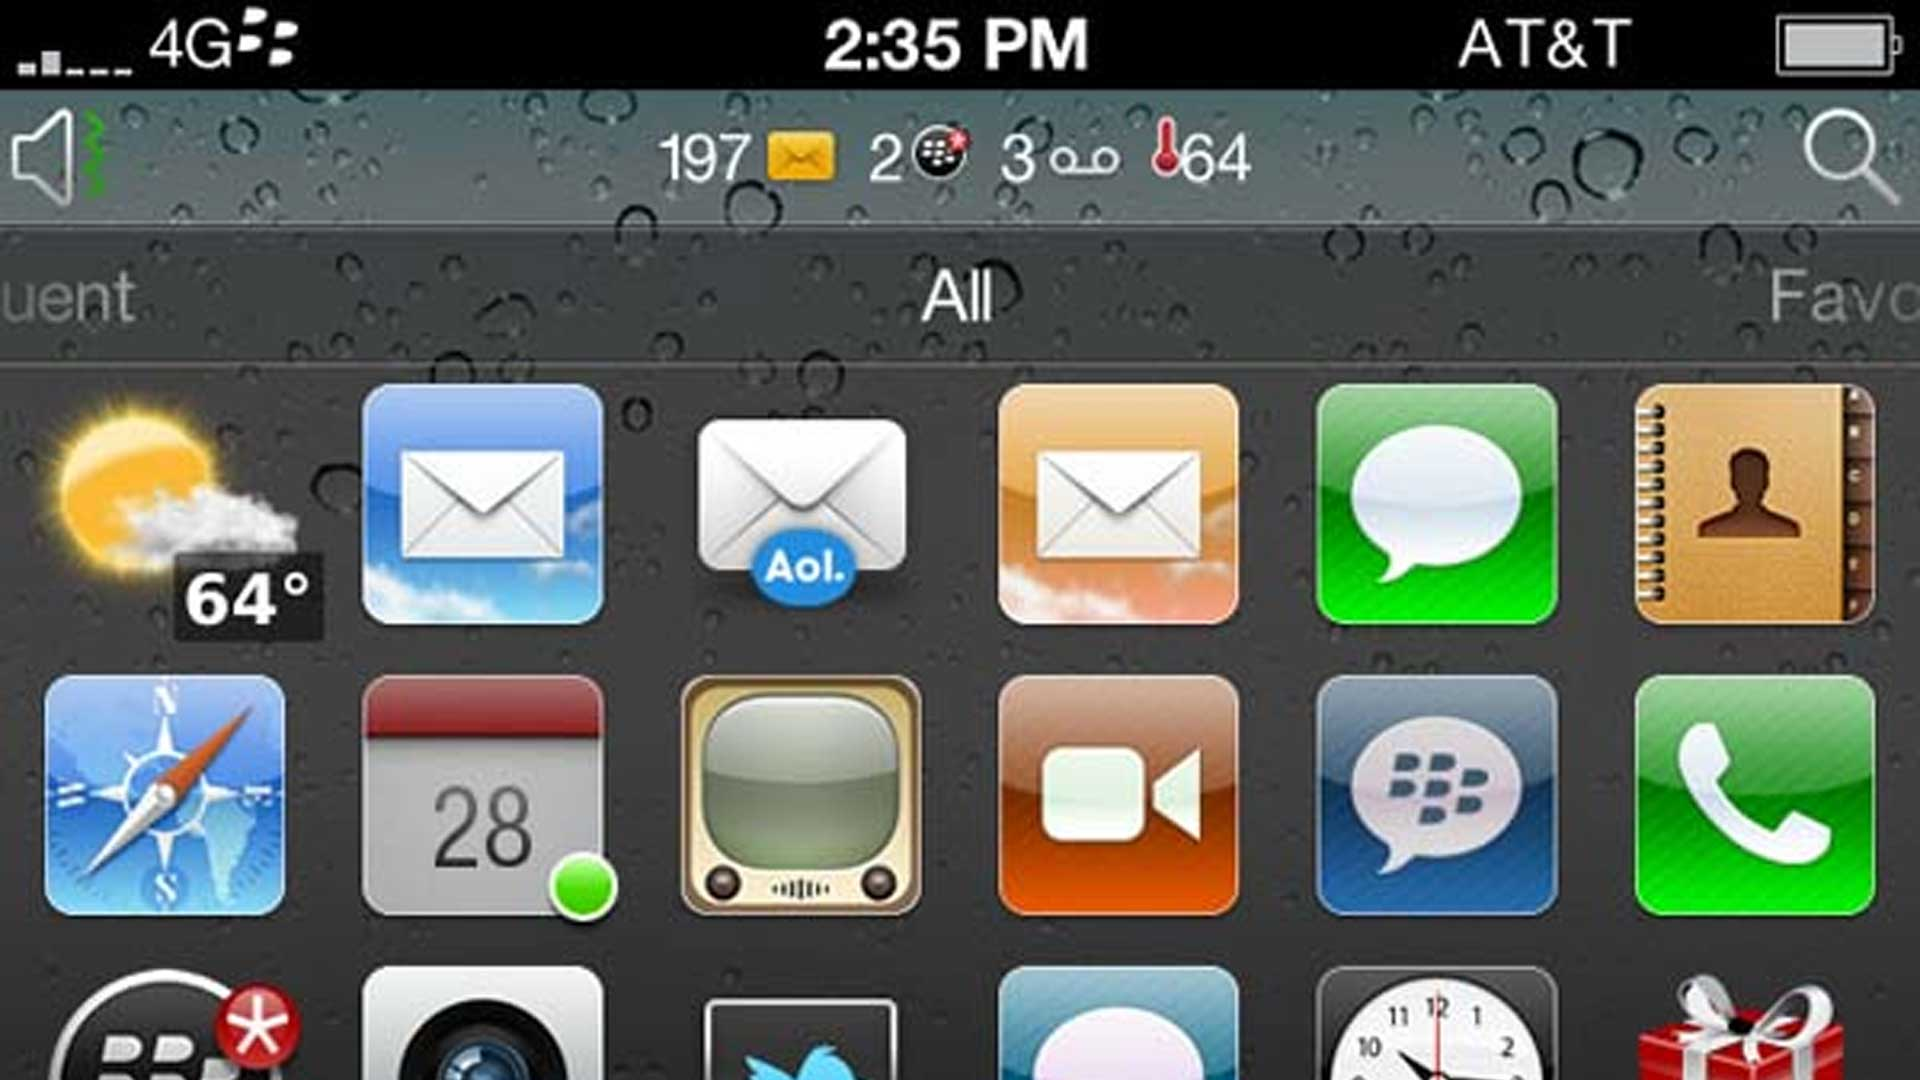 BlackBerry Curve 9320 Themes Free Downloads 12222 2018